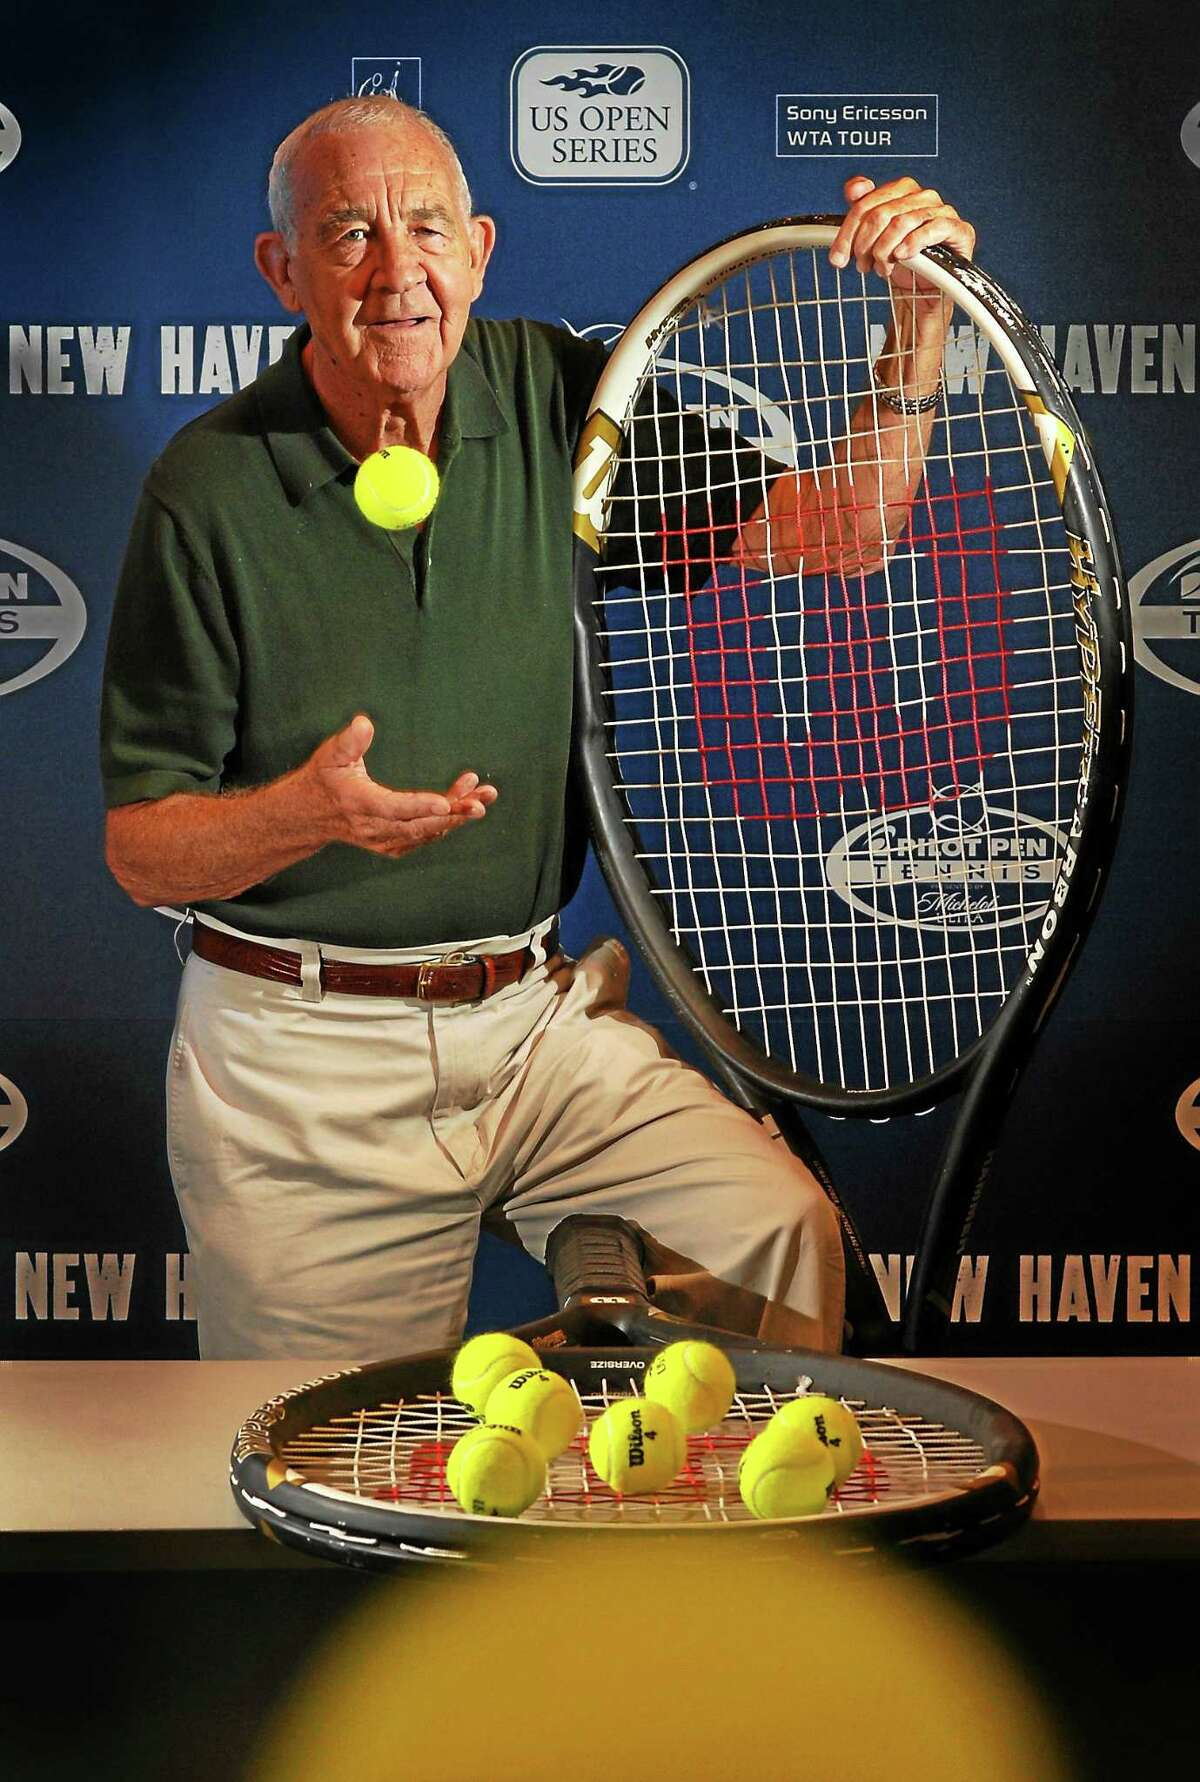 Former New Haven tennis tournament CEO Mike Davies, who died on Monday at the age of 79, was one of great innovators of the game.